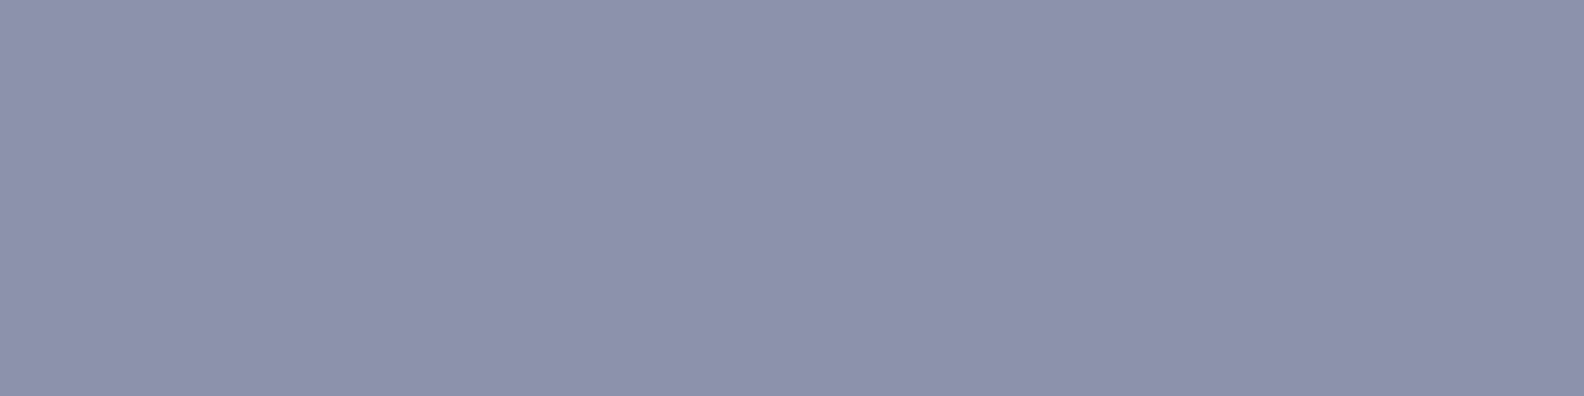 1584x396 Gray-blue Solid Color Background